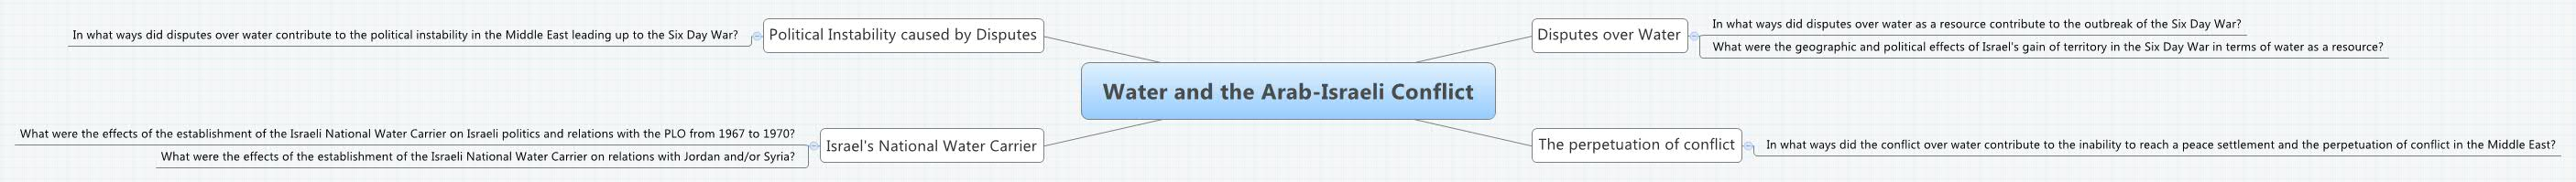 Outlining Arabic-Israeli Conflict?